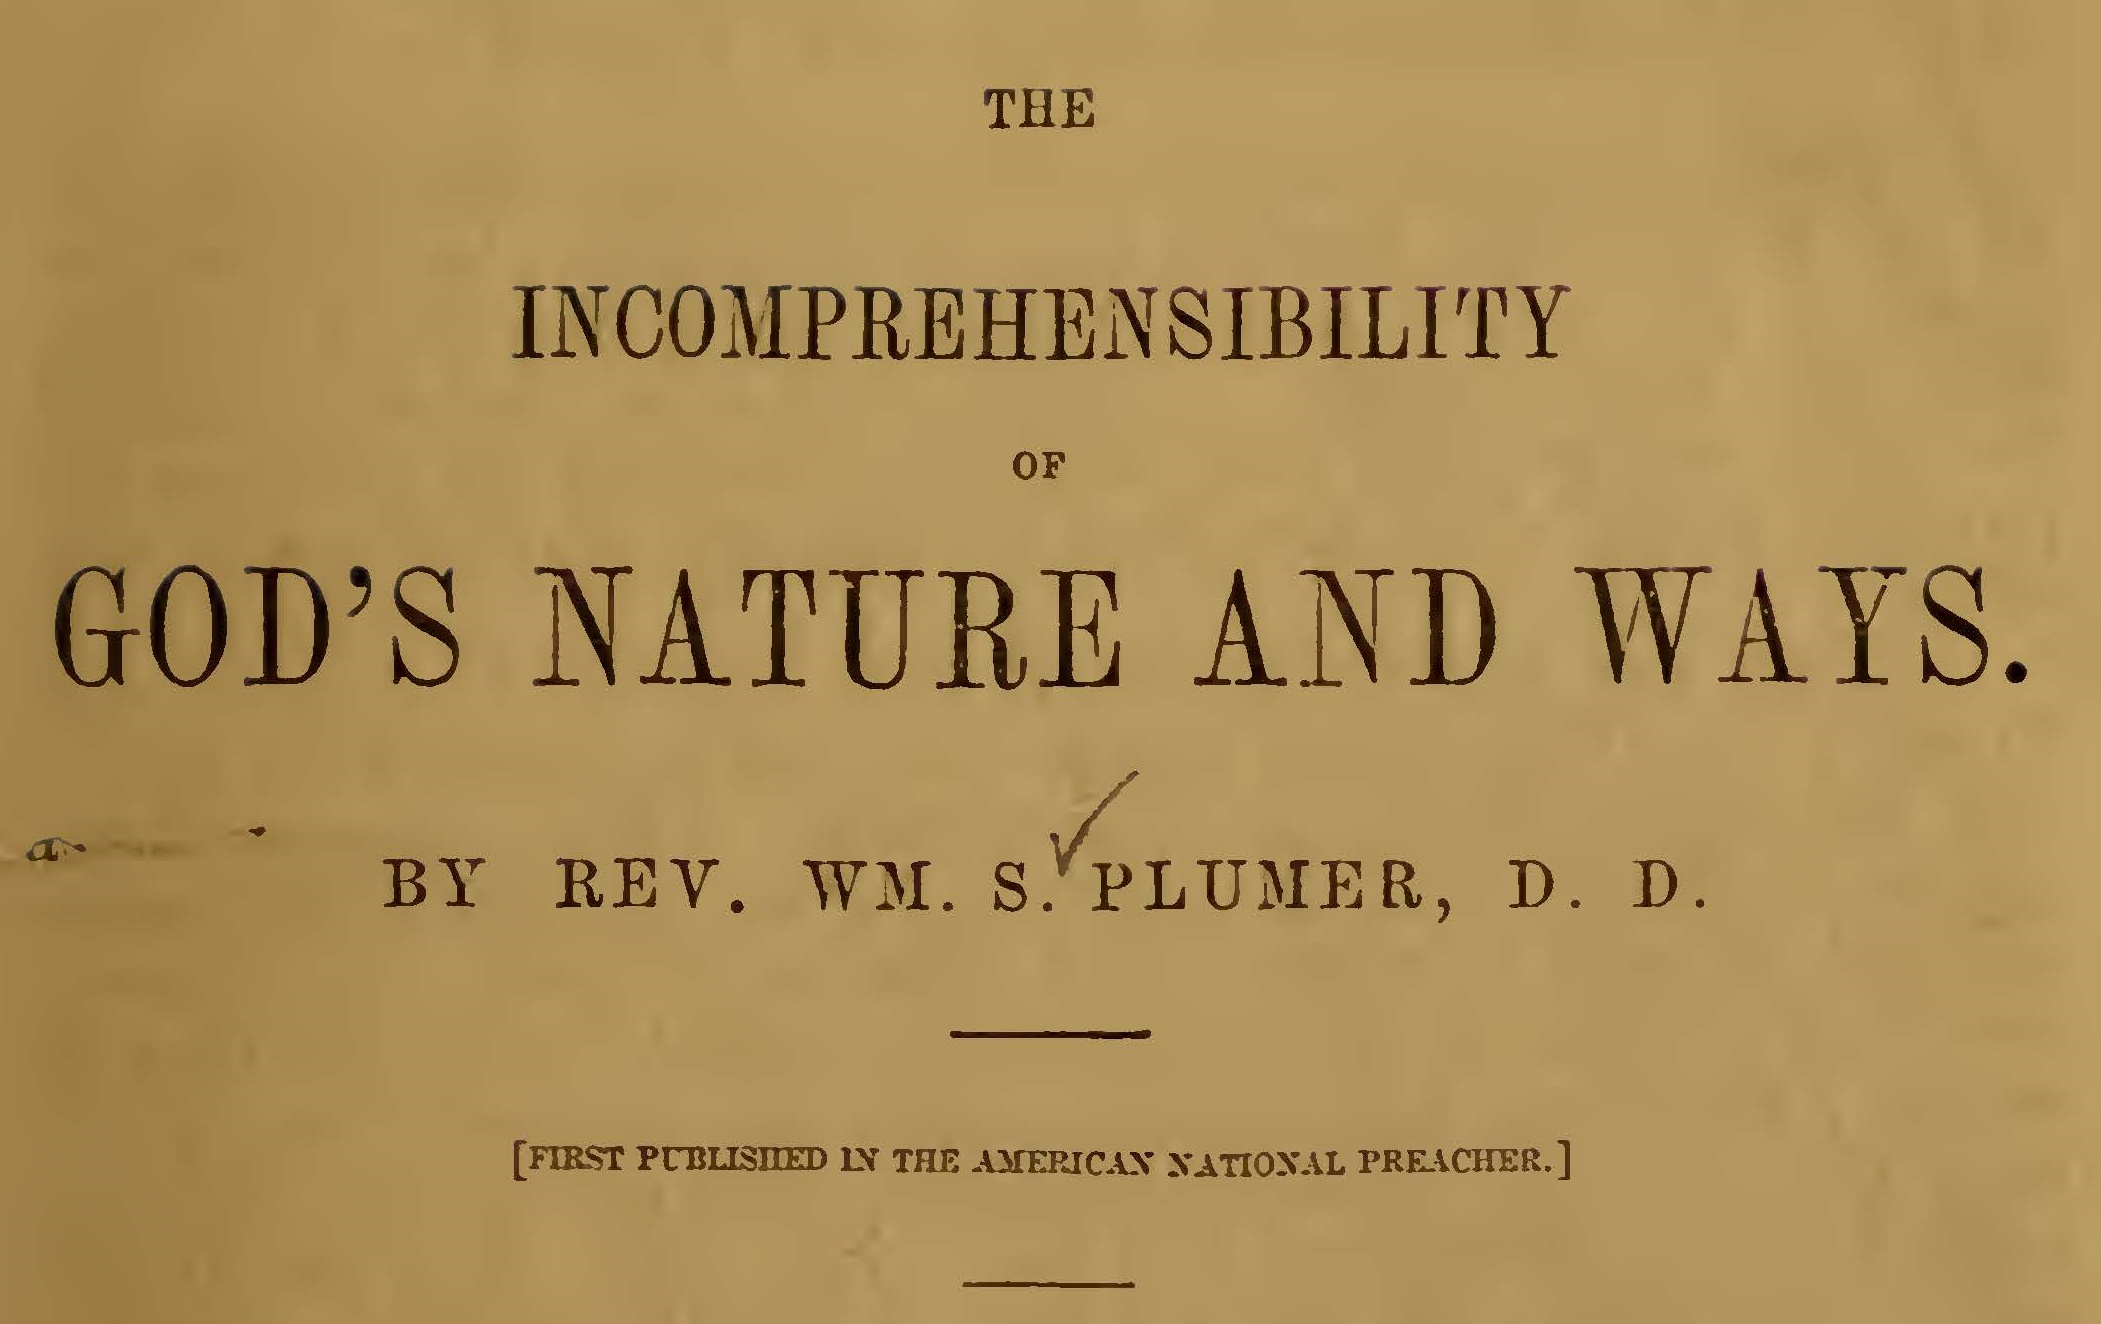 Plumer, William Swan, The Incomprehensibility of God's Nature and Ways Title Page.jpg